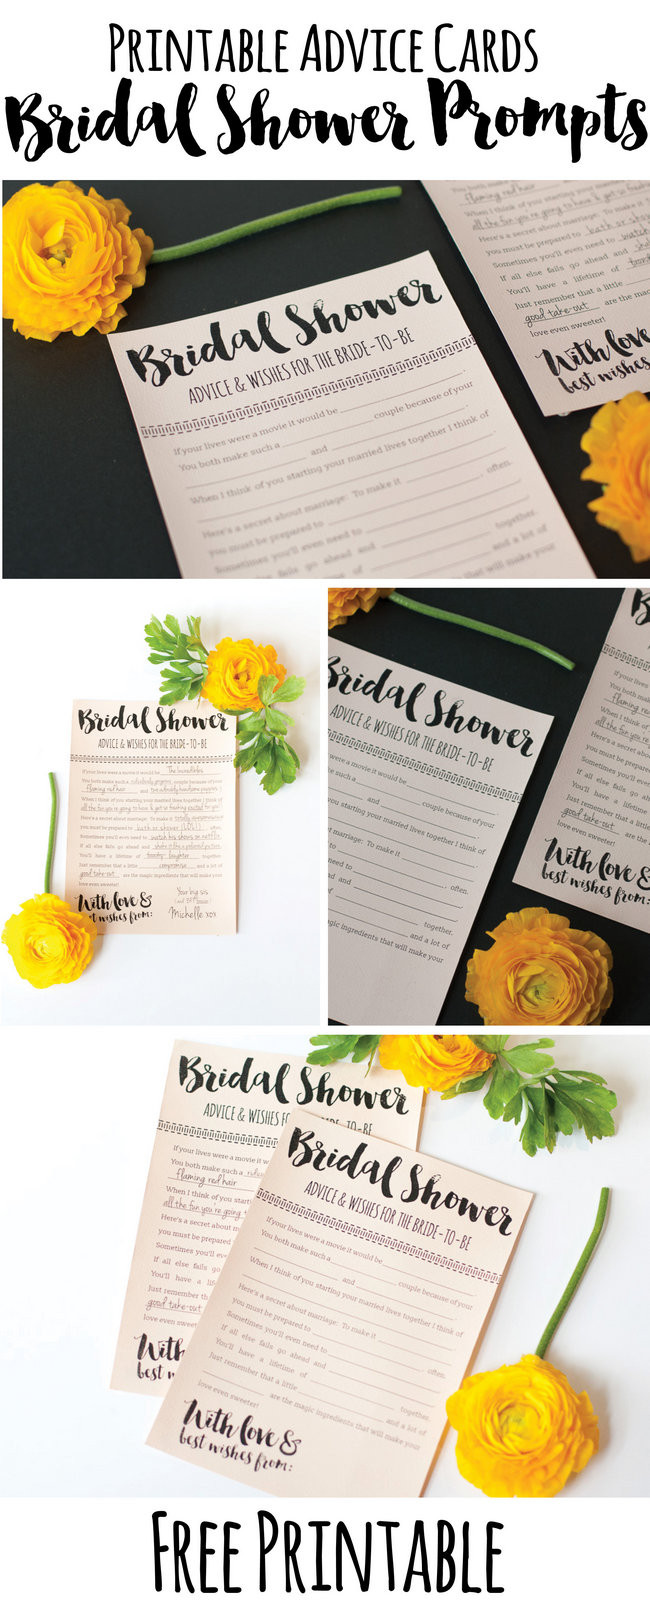 It's just a photo of Handy Free Printable Bridal Shower Advice Cards